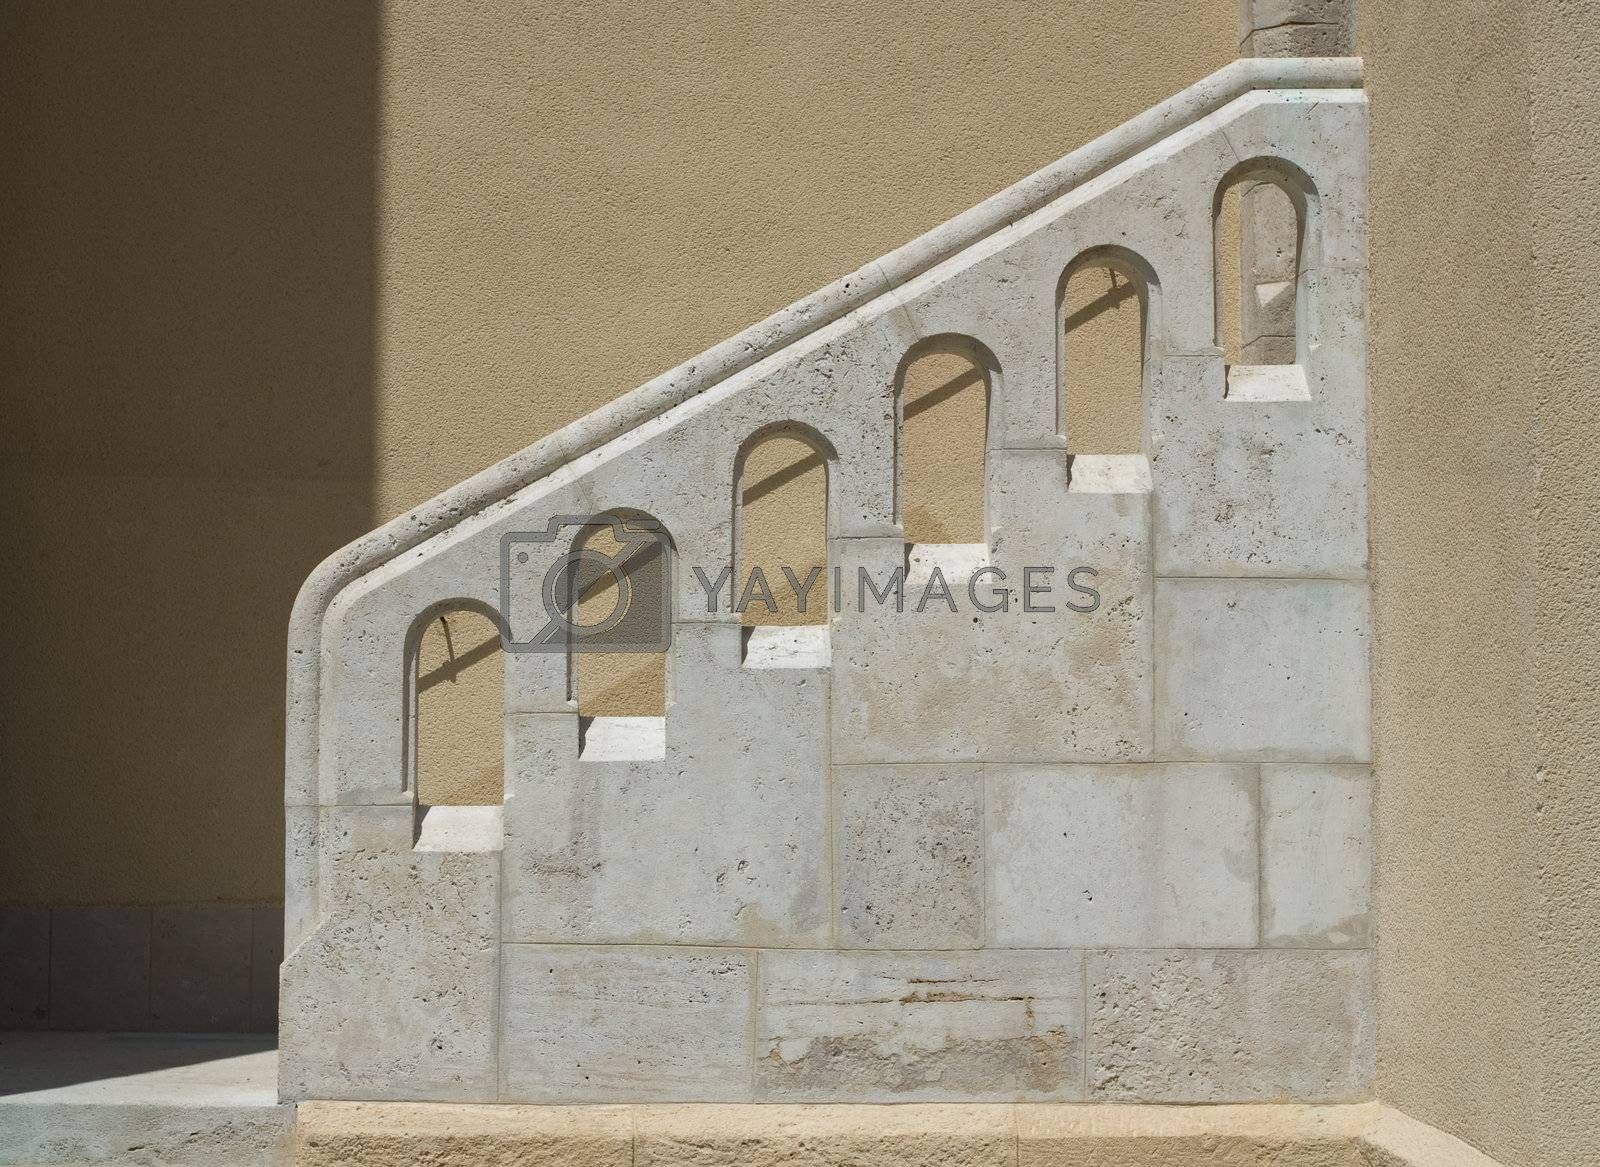 Outside stairs and white stone handrail    by SergeyAK